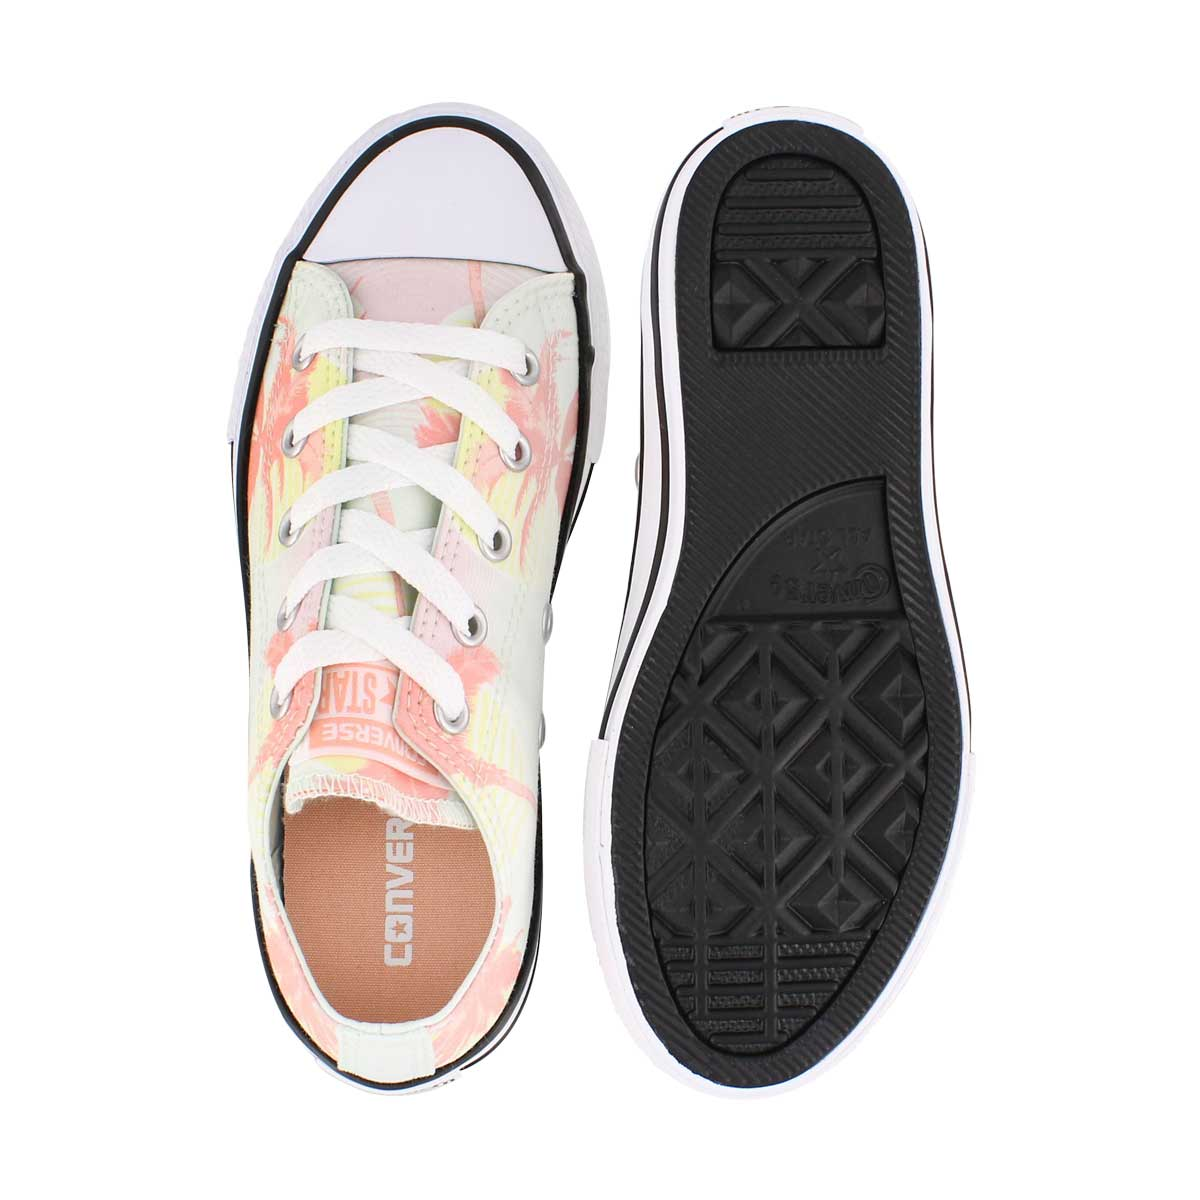 Grls CTAS Palm Trees grn/coral sneaker